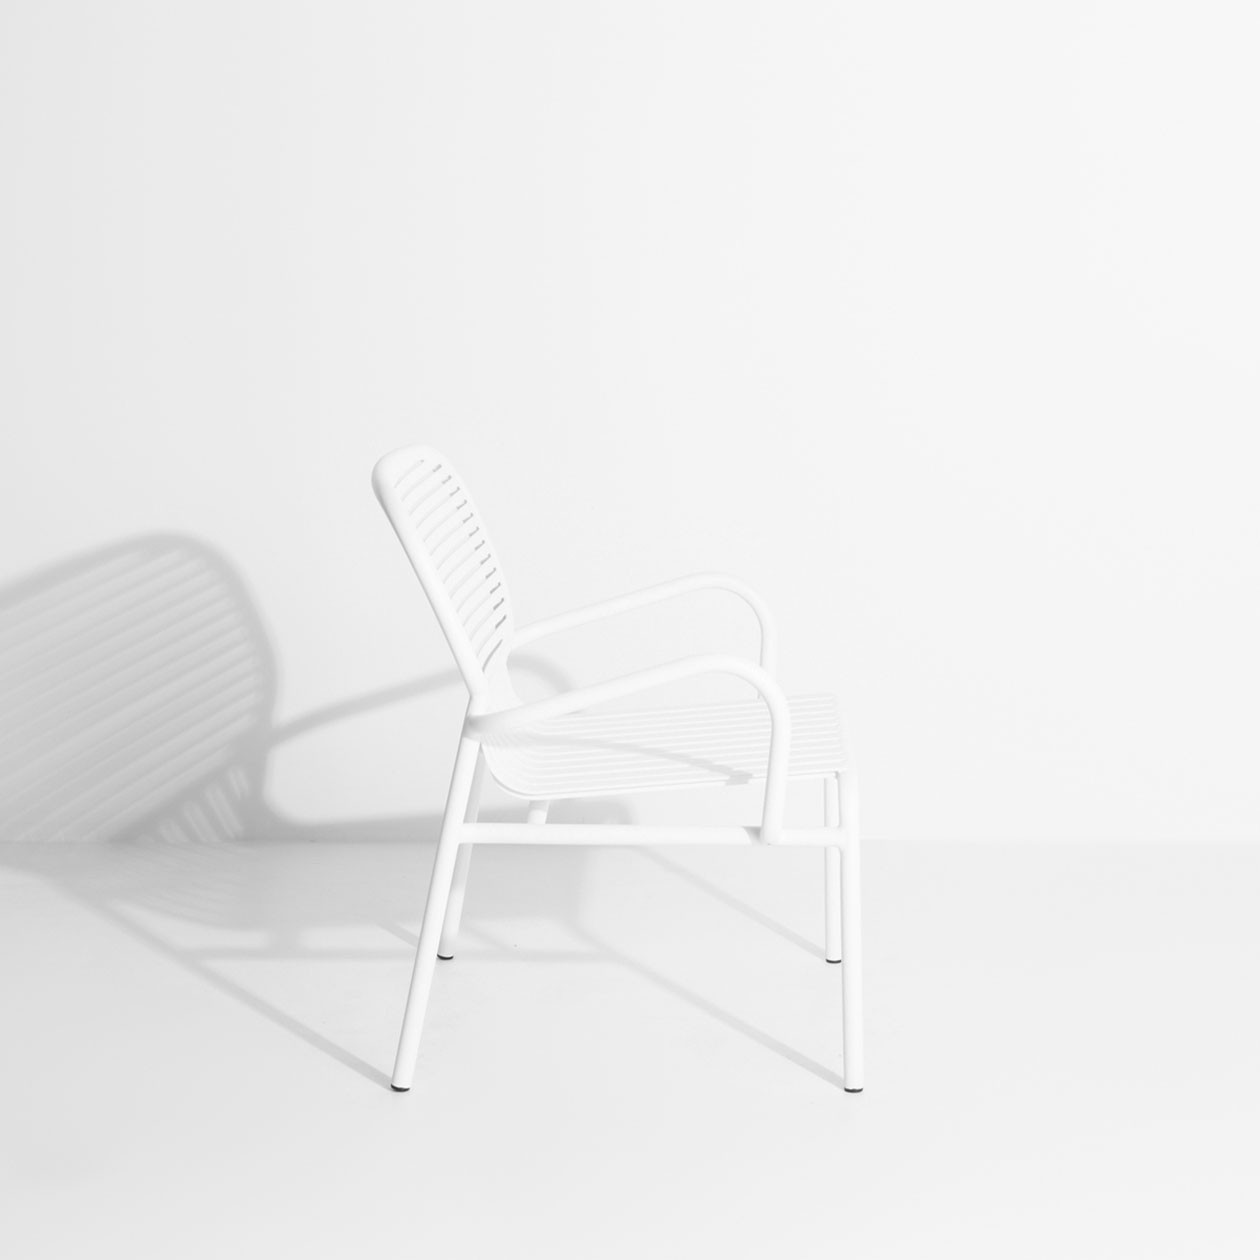 Week-End Armchair - The WEEK-END collection is a full range of outdoor furniture. Designed with practicality in mind, all of the seats are stackable. The Week-End collection is a complete range of outdoor furniture. The oval and circular shape drawn by the backrests makes them a graphic statement. The impact of the horizontal and vertical slats, so similar to stripes, highlights the full and empty spaces, asserting the identity of the collection. Quantity: 2 Chairs    Matter of Stuff